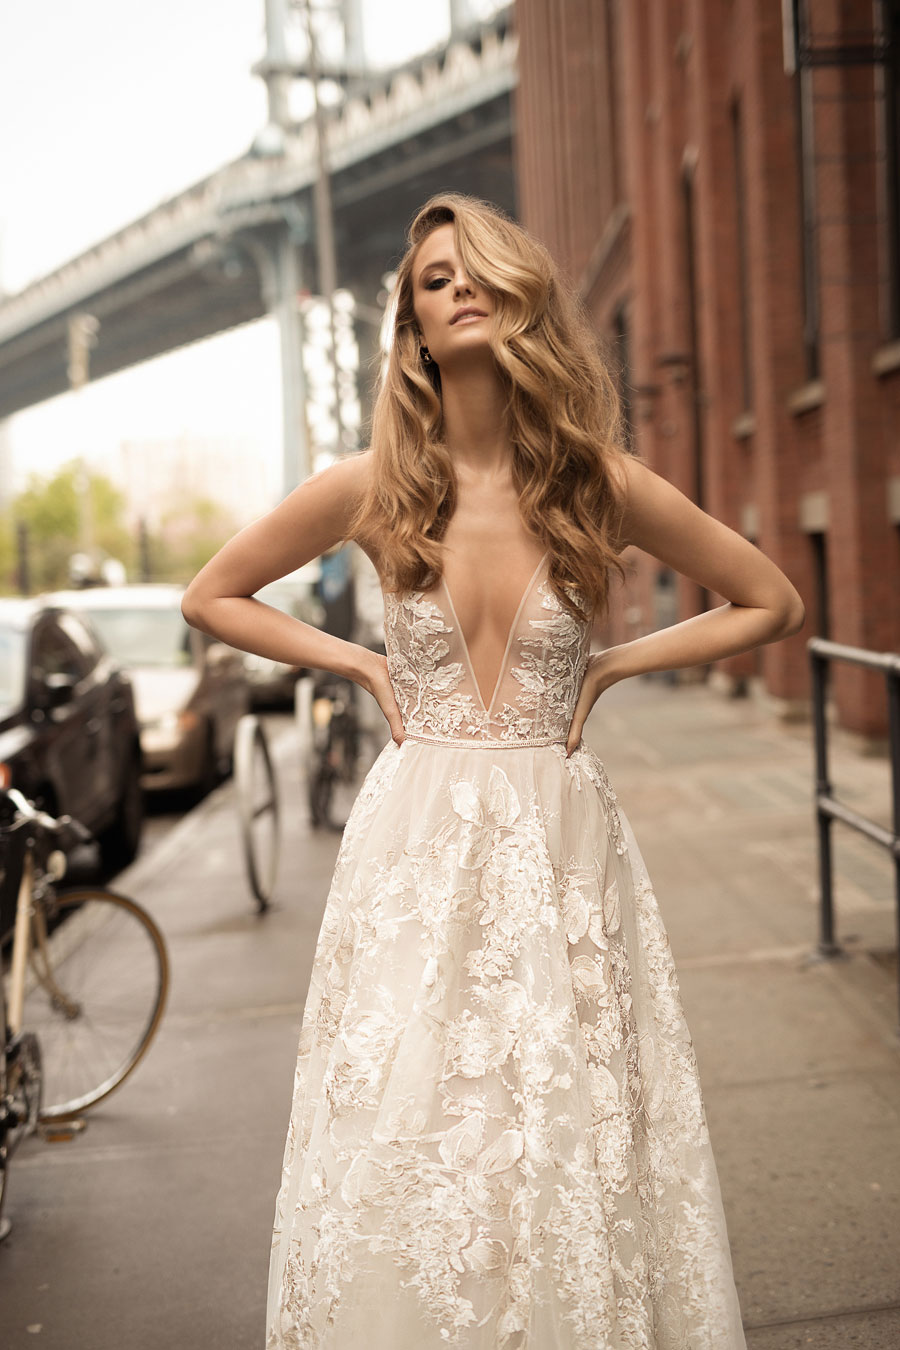 The New Bridal Collection From BERTA Is Yet Again A Standout That Brings Take On Fashion